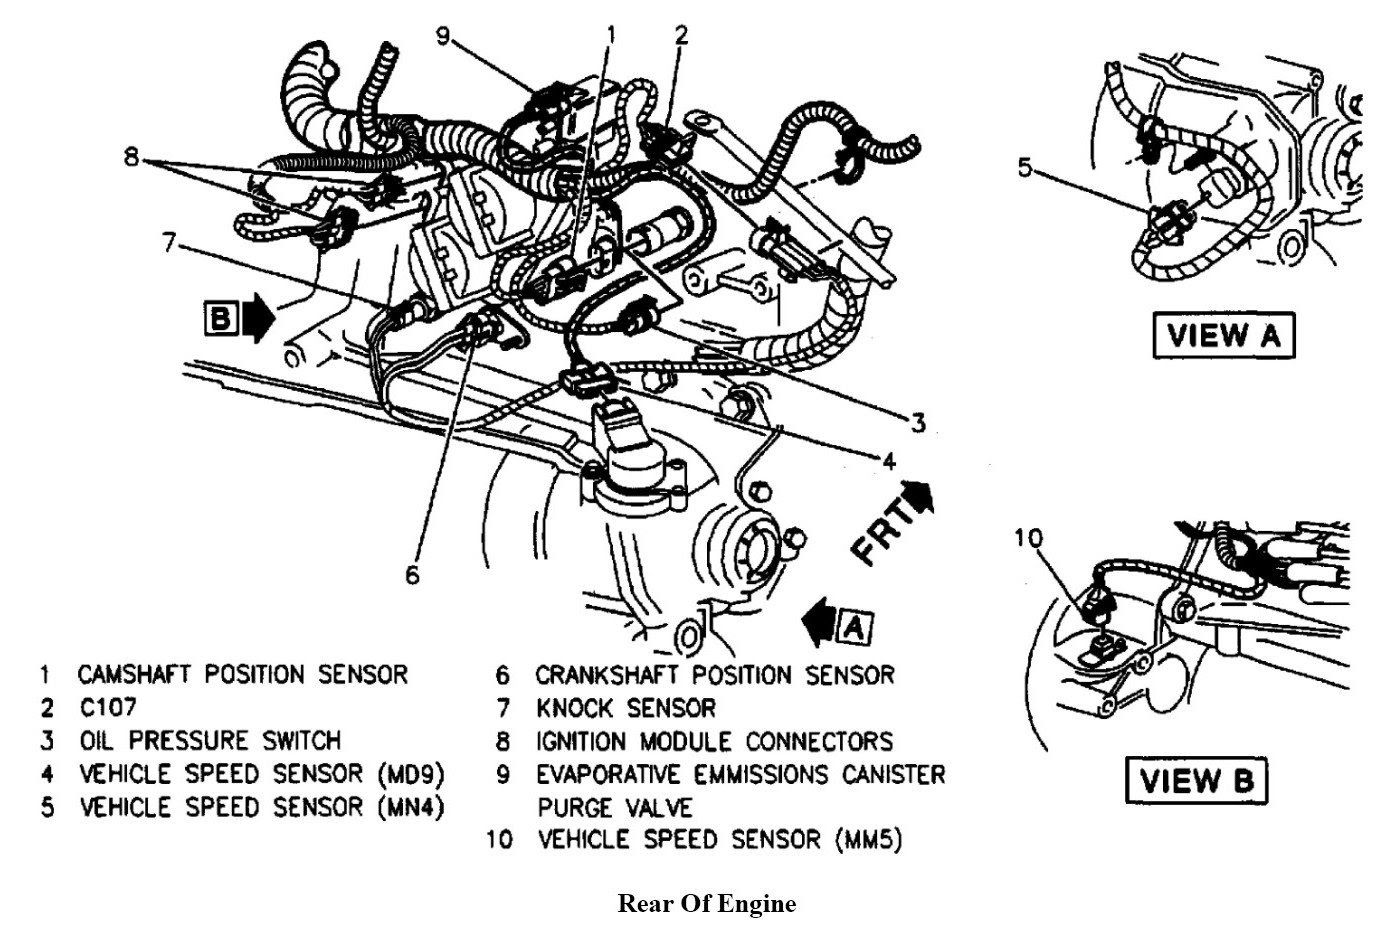 1997 Chevy Cavalier Engine Diagram 2 4 - Best Place to ...